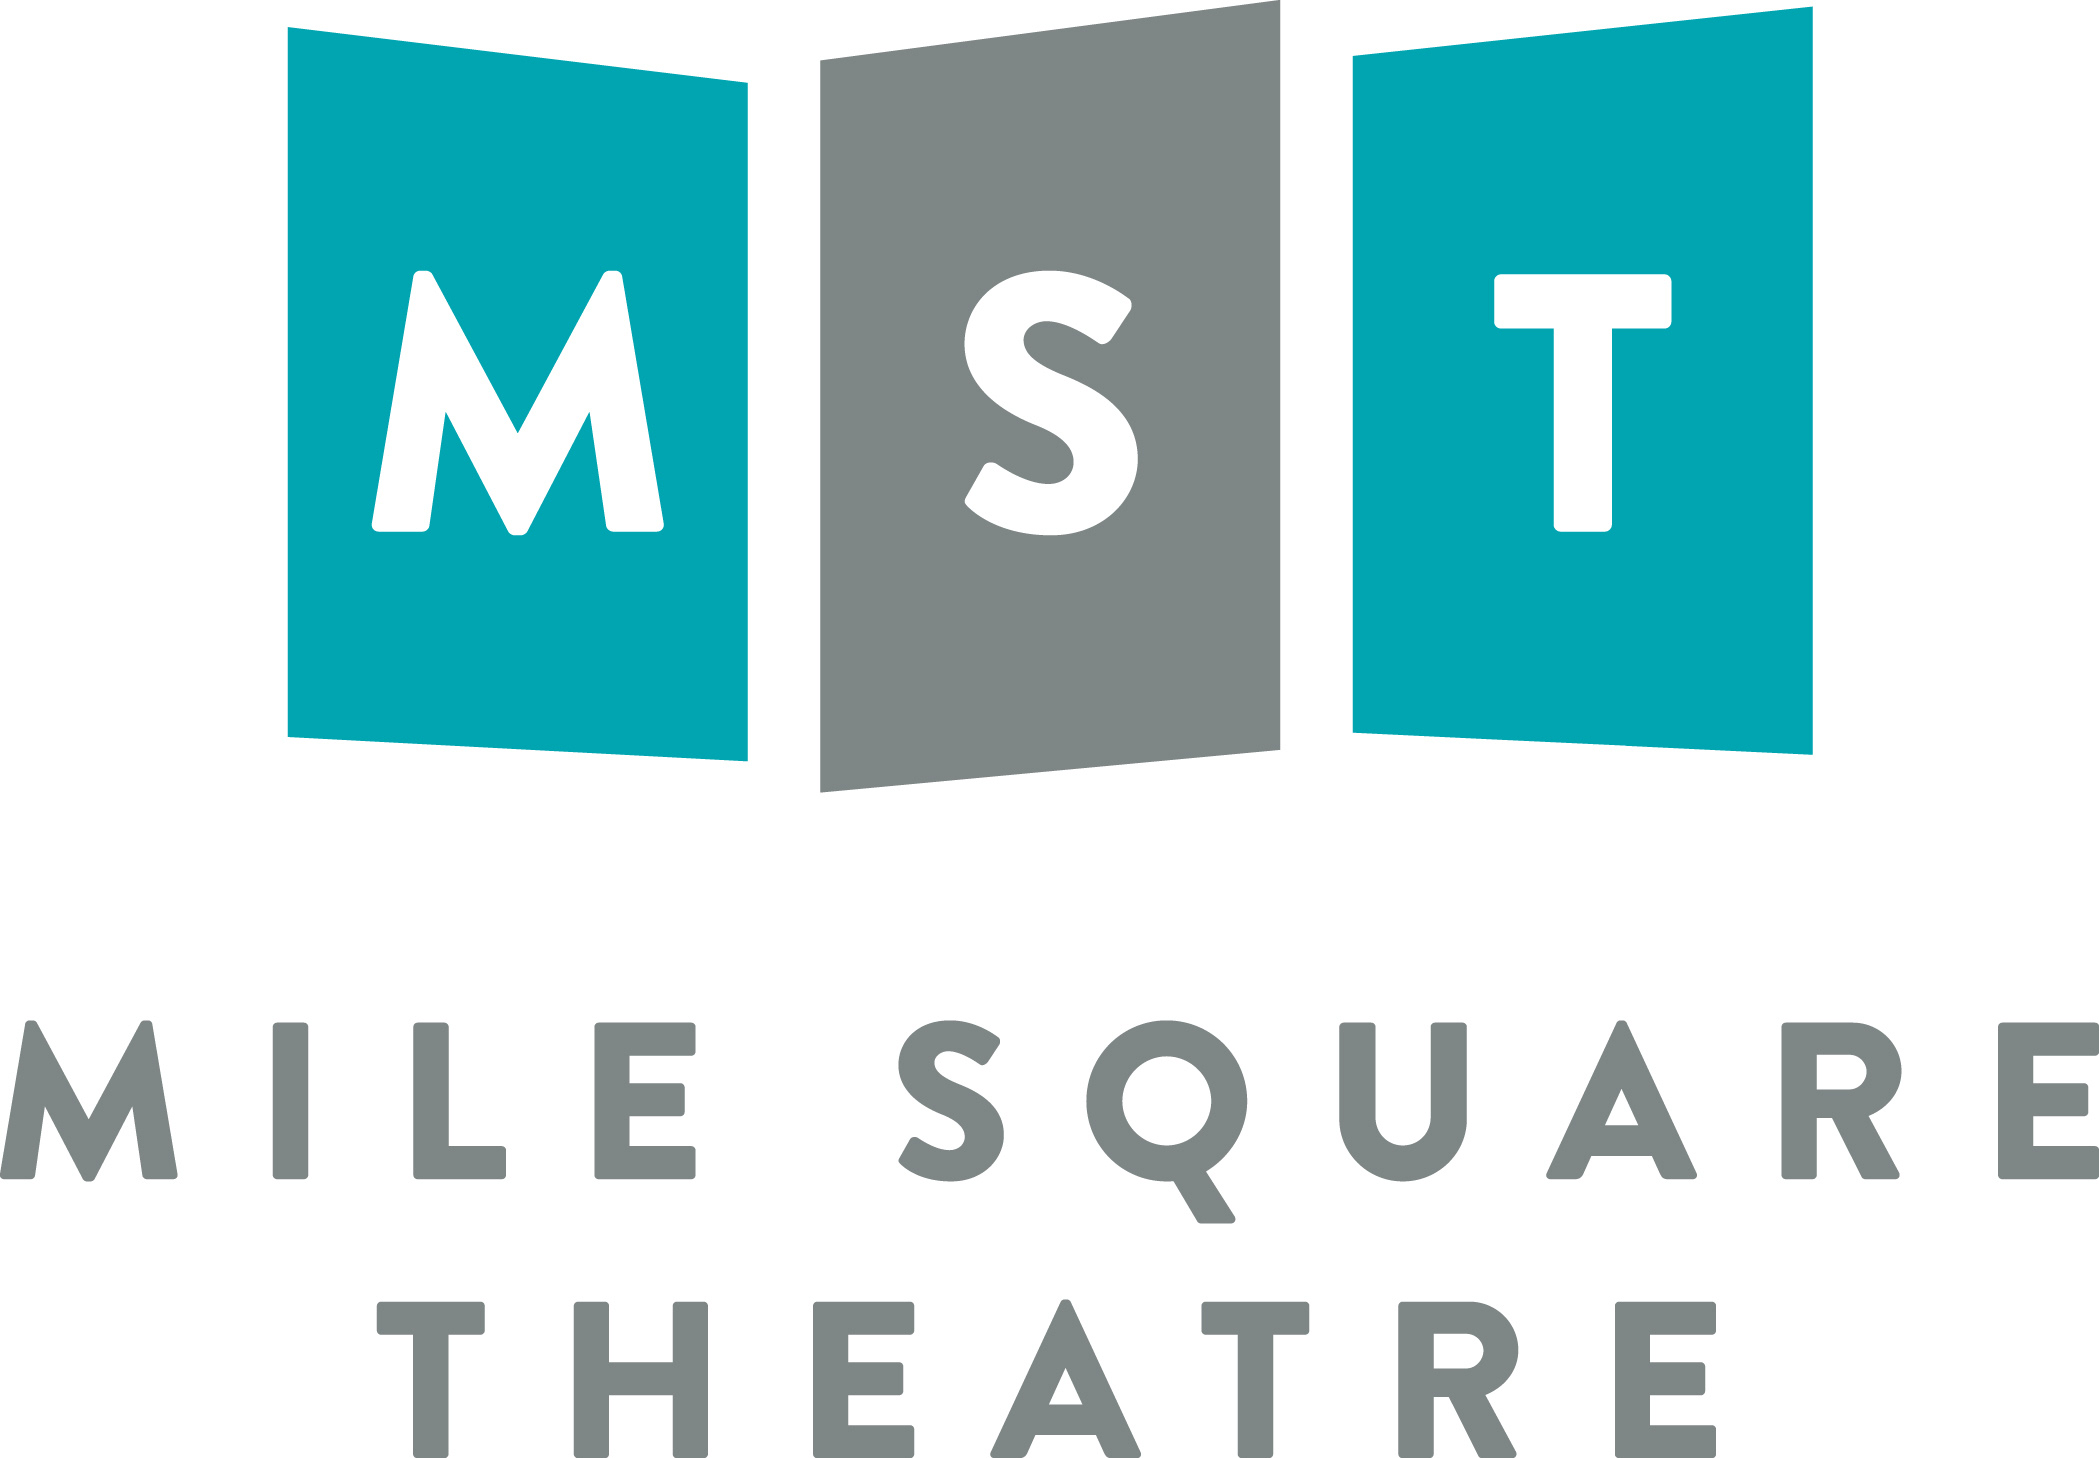 Mile Square Theatre